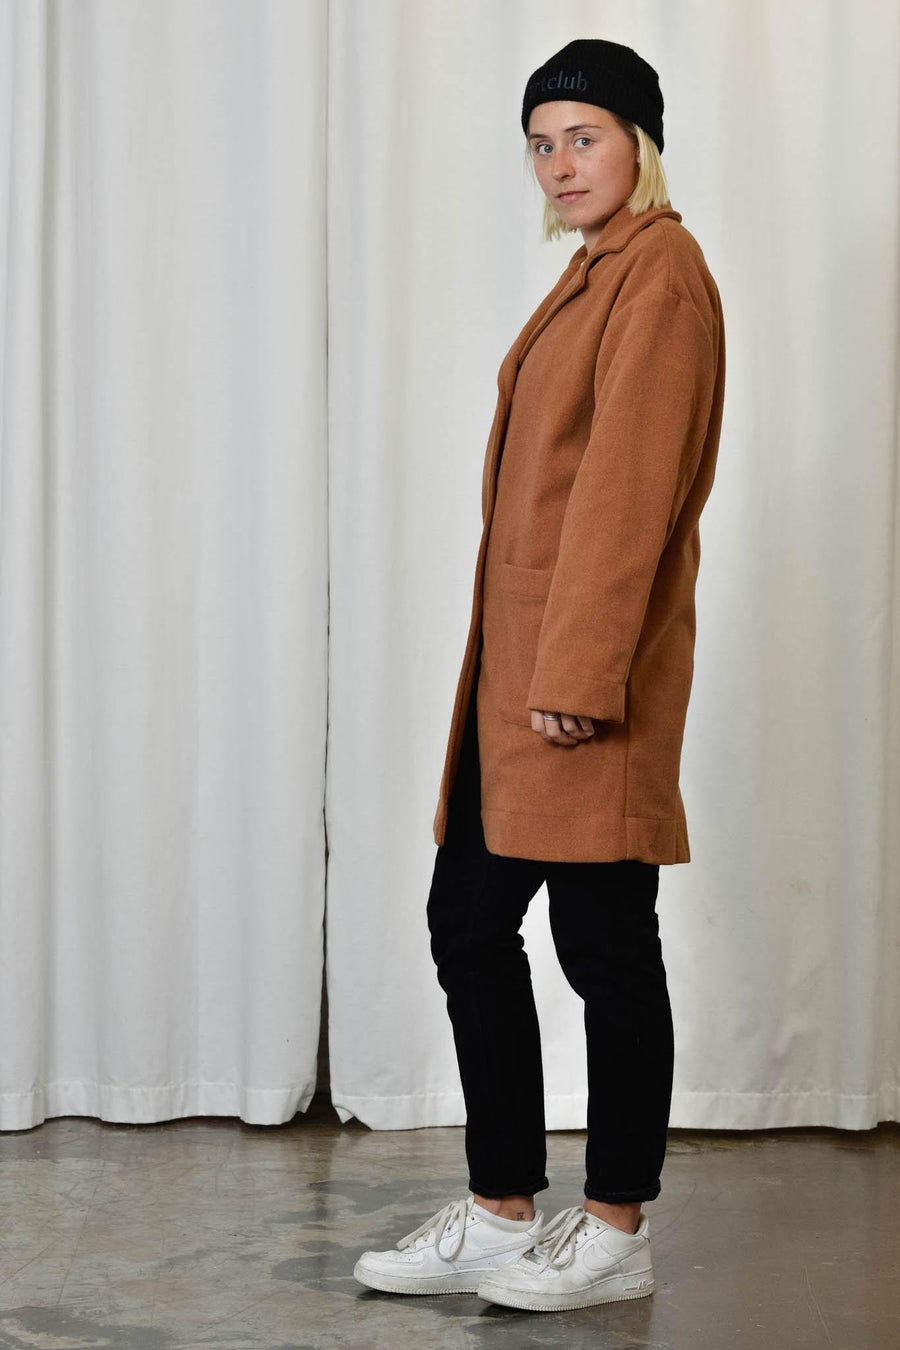 Unisex Coat in Terracotta - Artclub and Friends